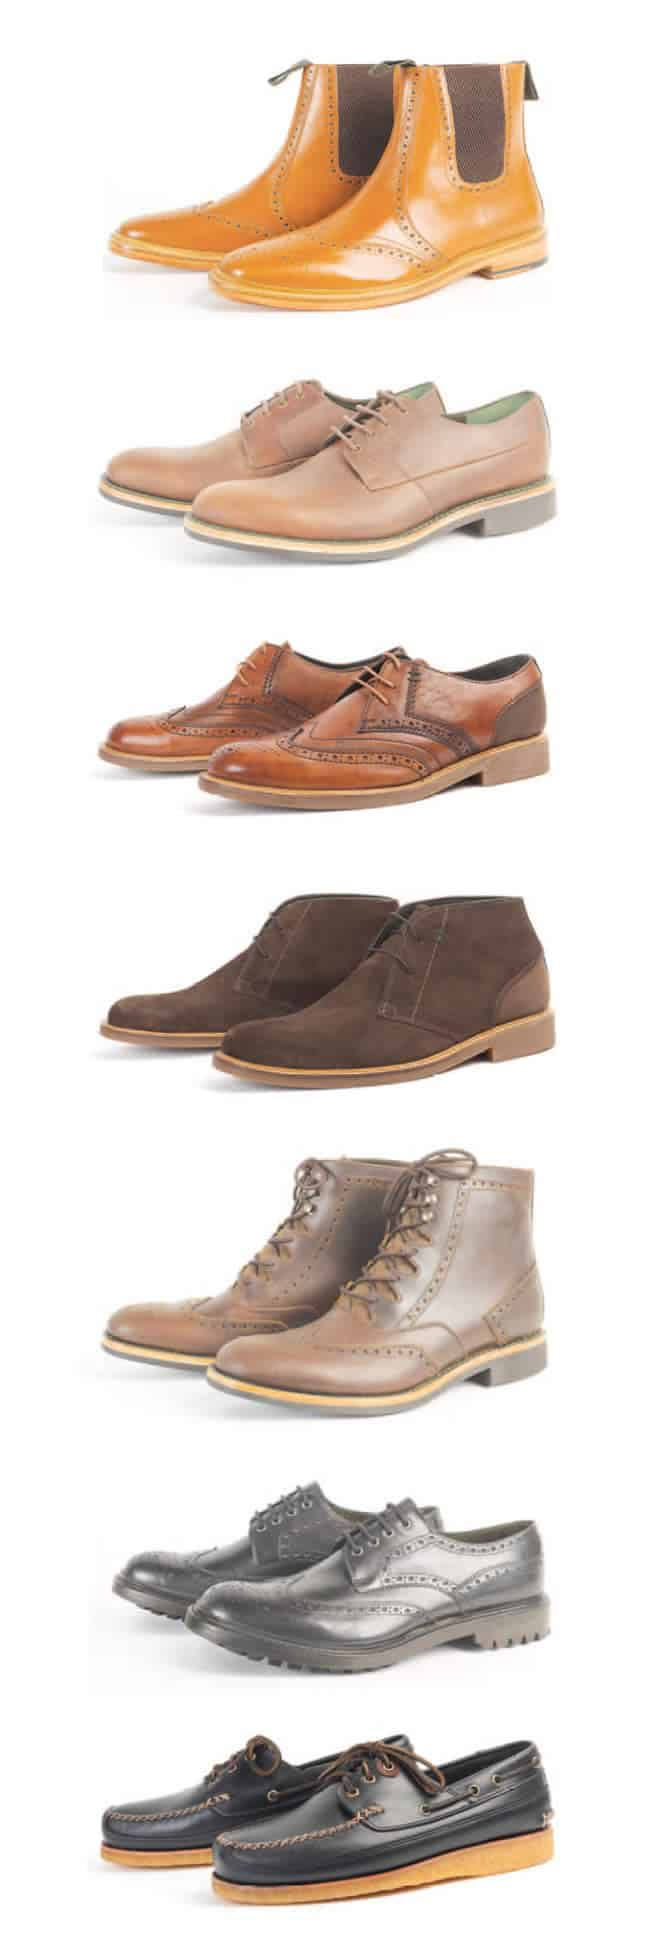 Barbour Footwear Collection